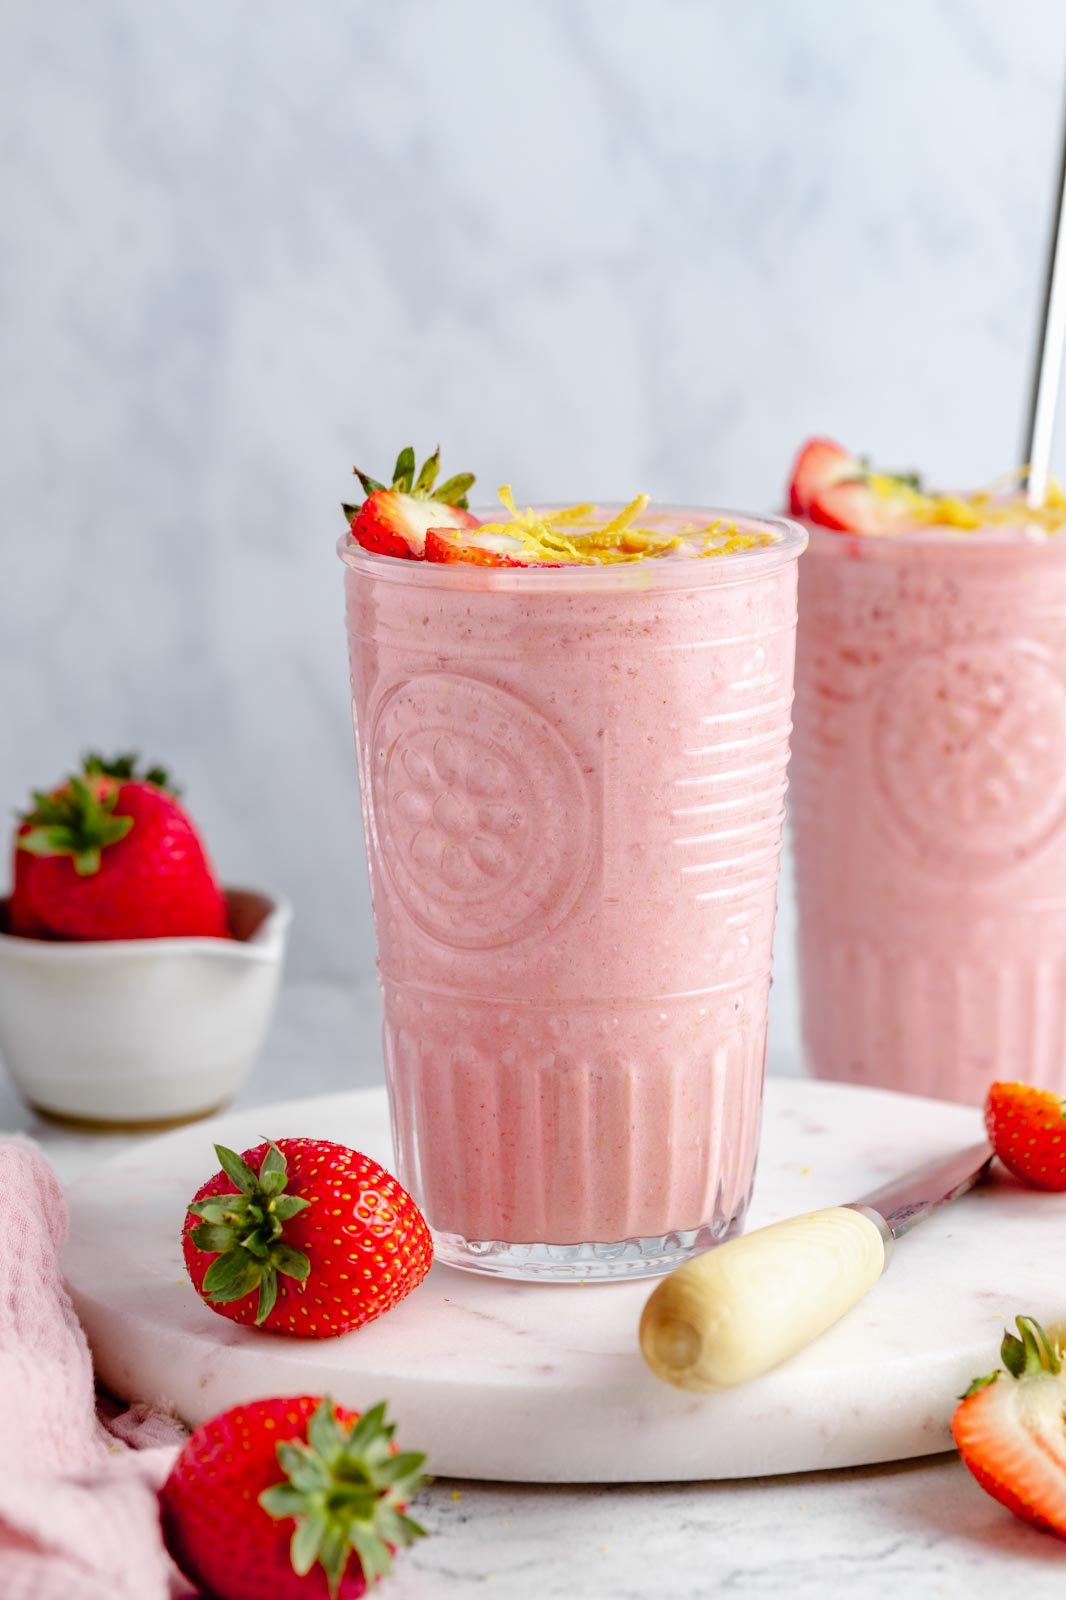 healthy strawberry lemonade smoothie in a glass